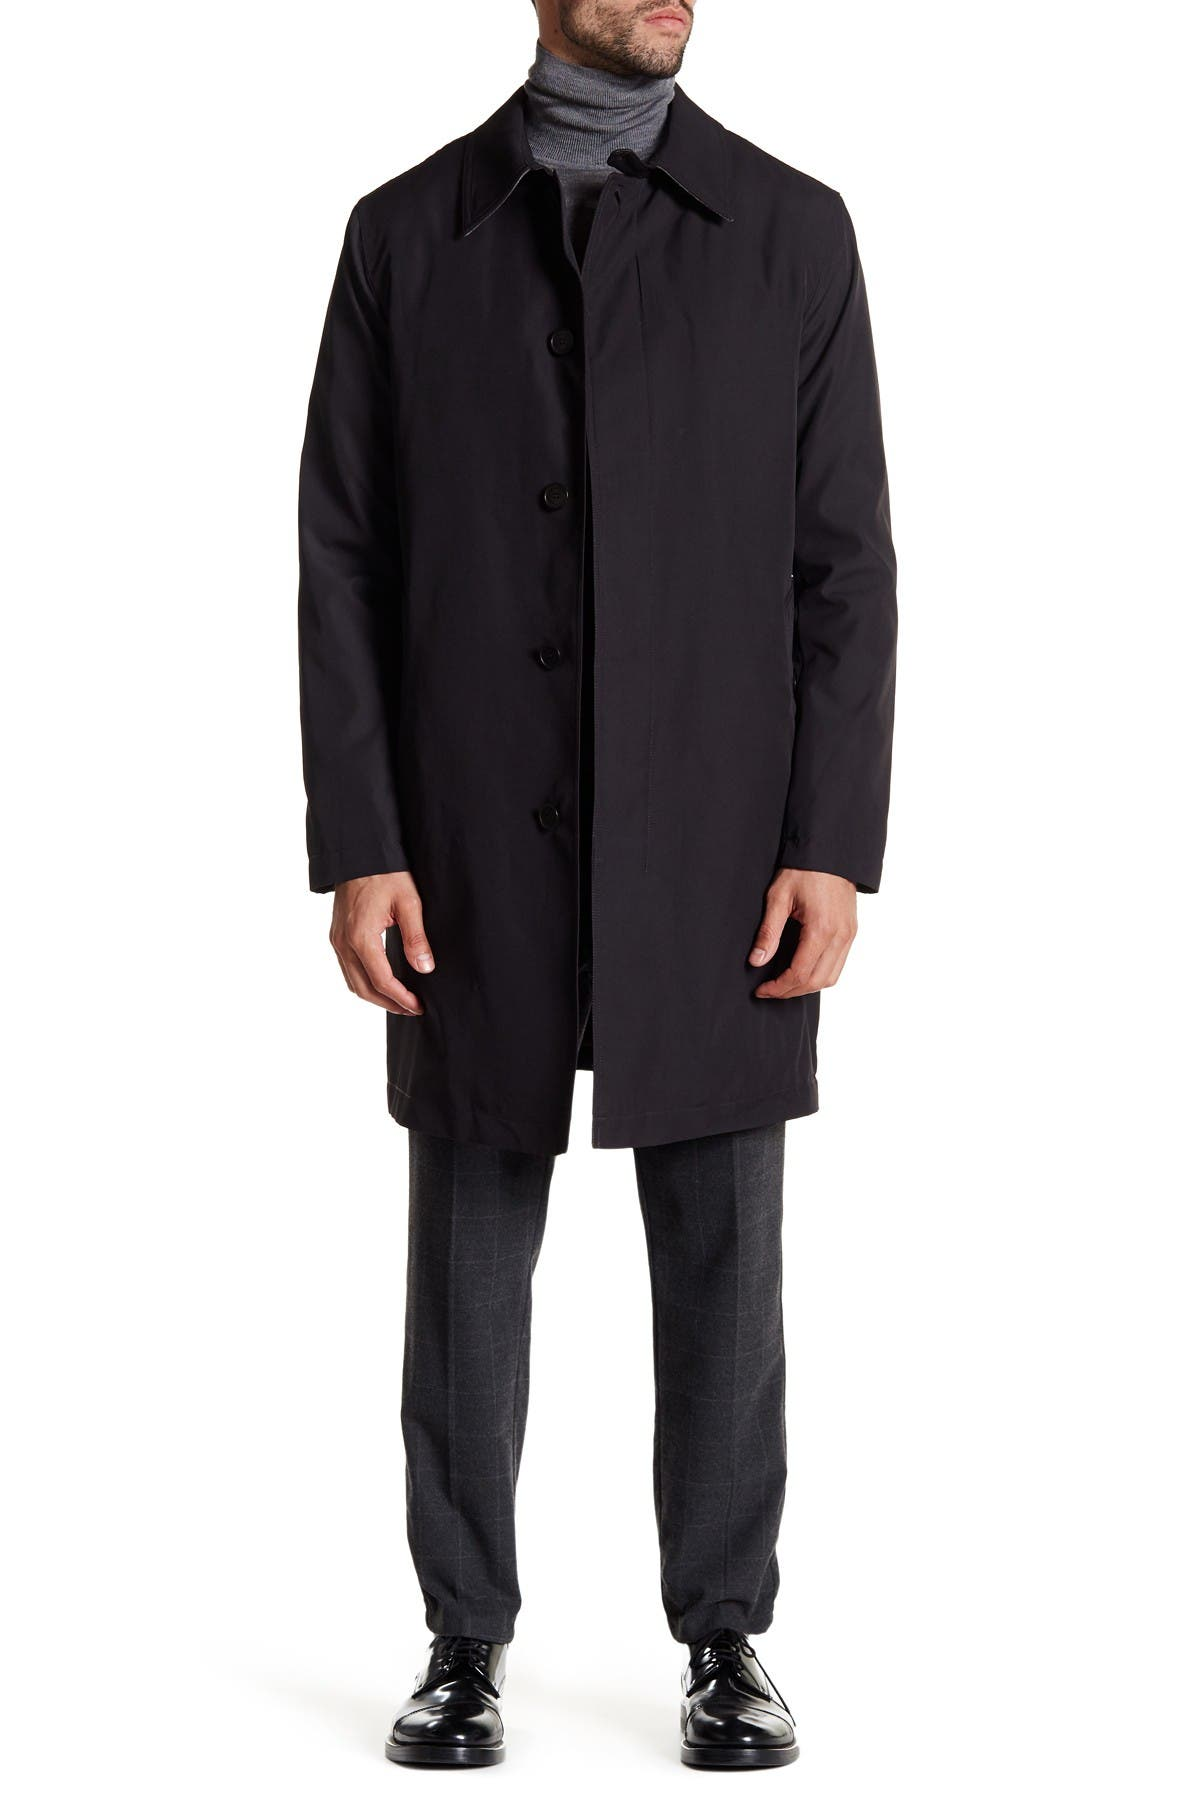 Image of Cole Haan Solid Trench Rain Coat